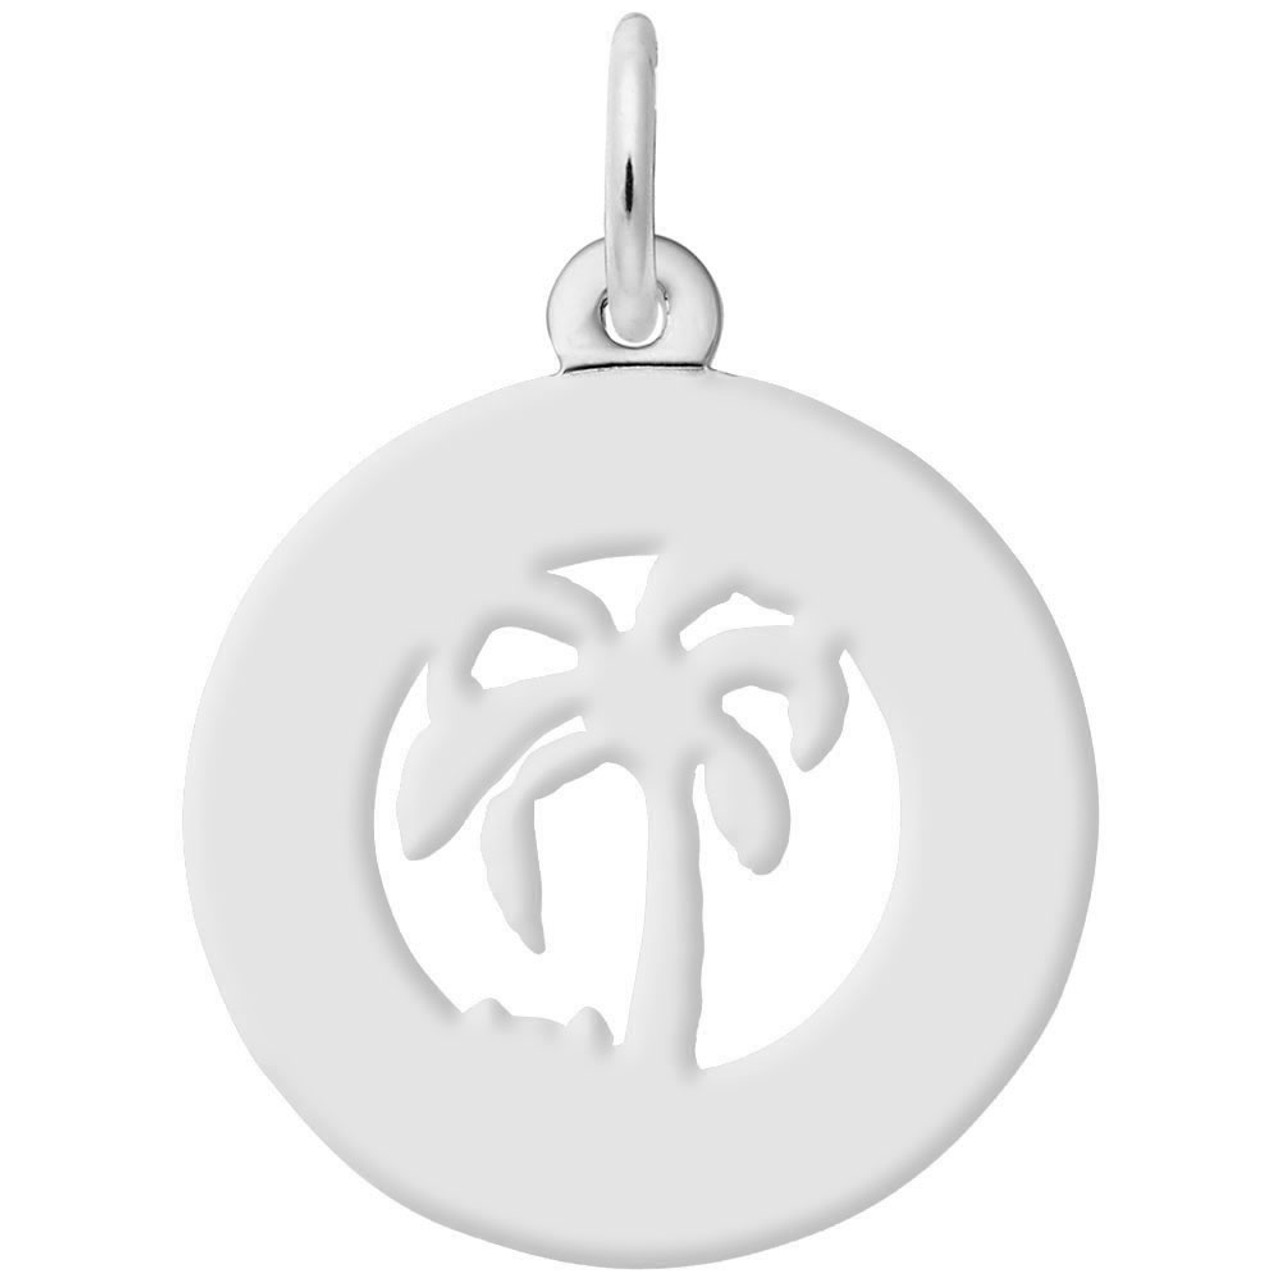 """Florida"" Palm Tree Ring Charm with Pearl Accent - Engraveable Backside - Sterling Silver and 14k White Gold"